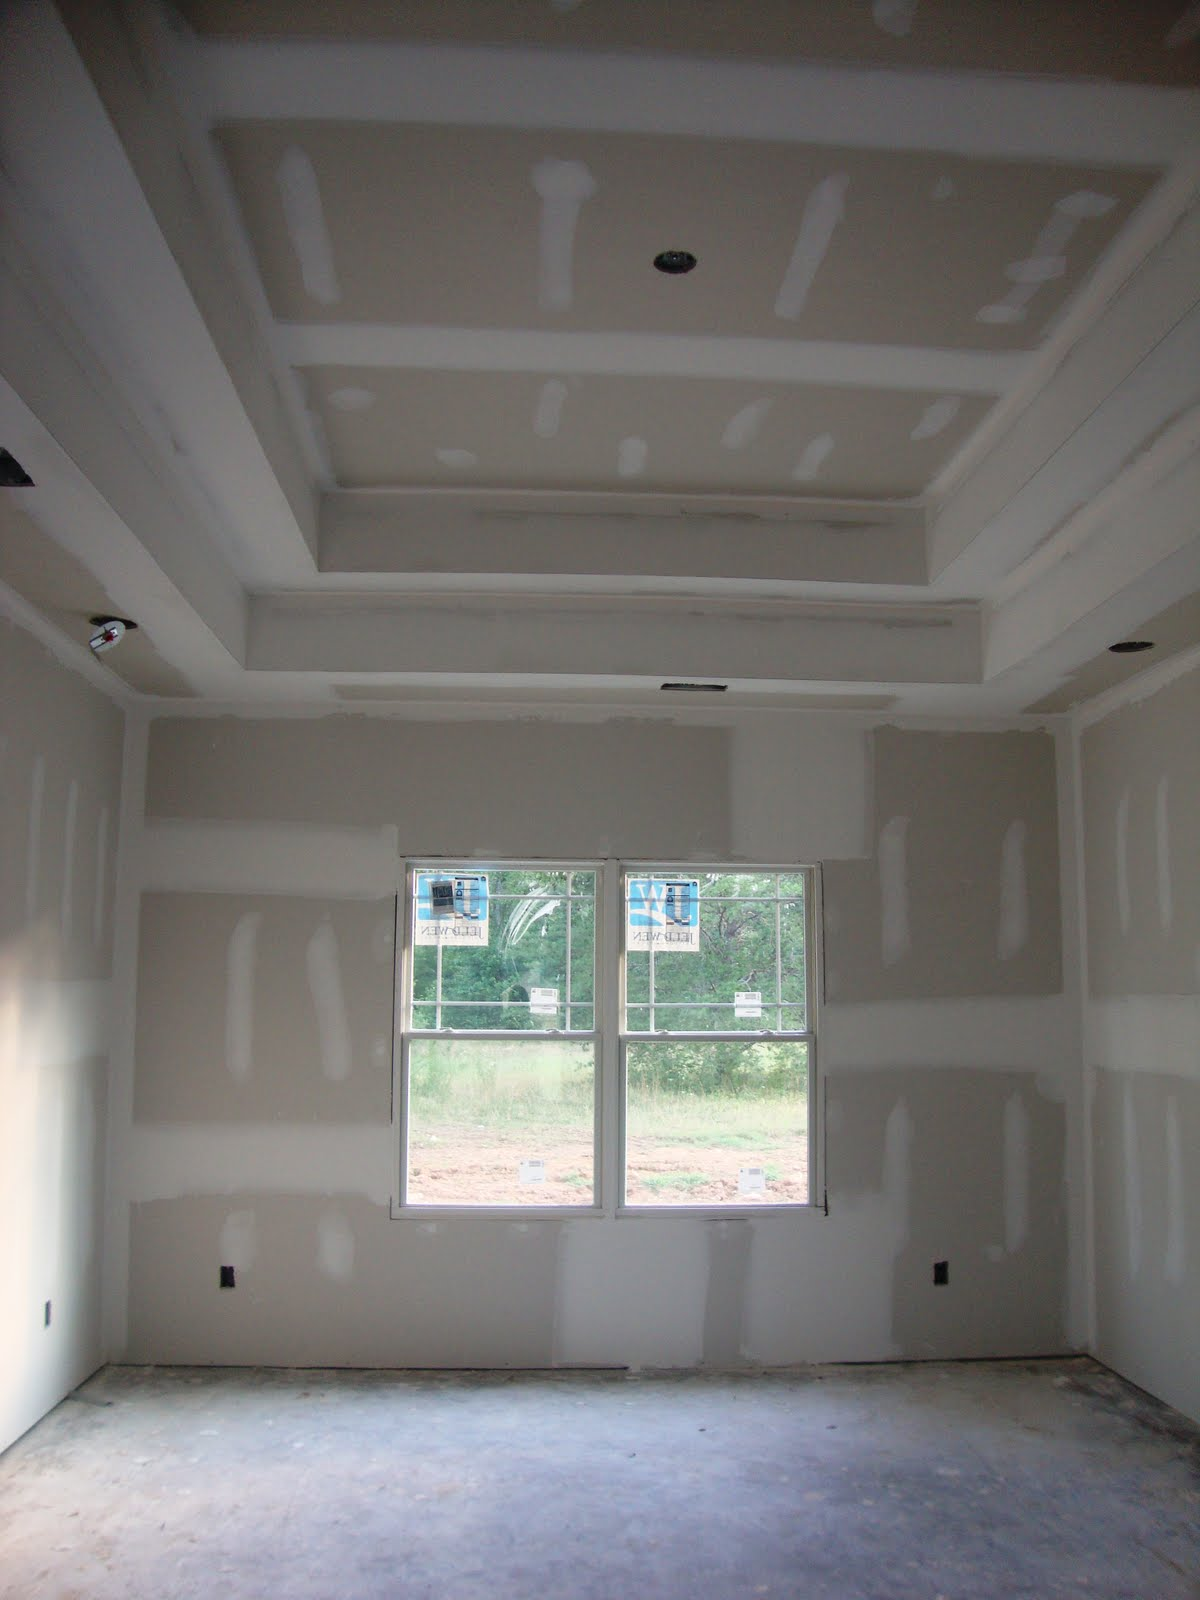 chose to use a rectangular double tray ceiling in our master bedroom